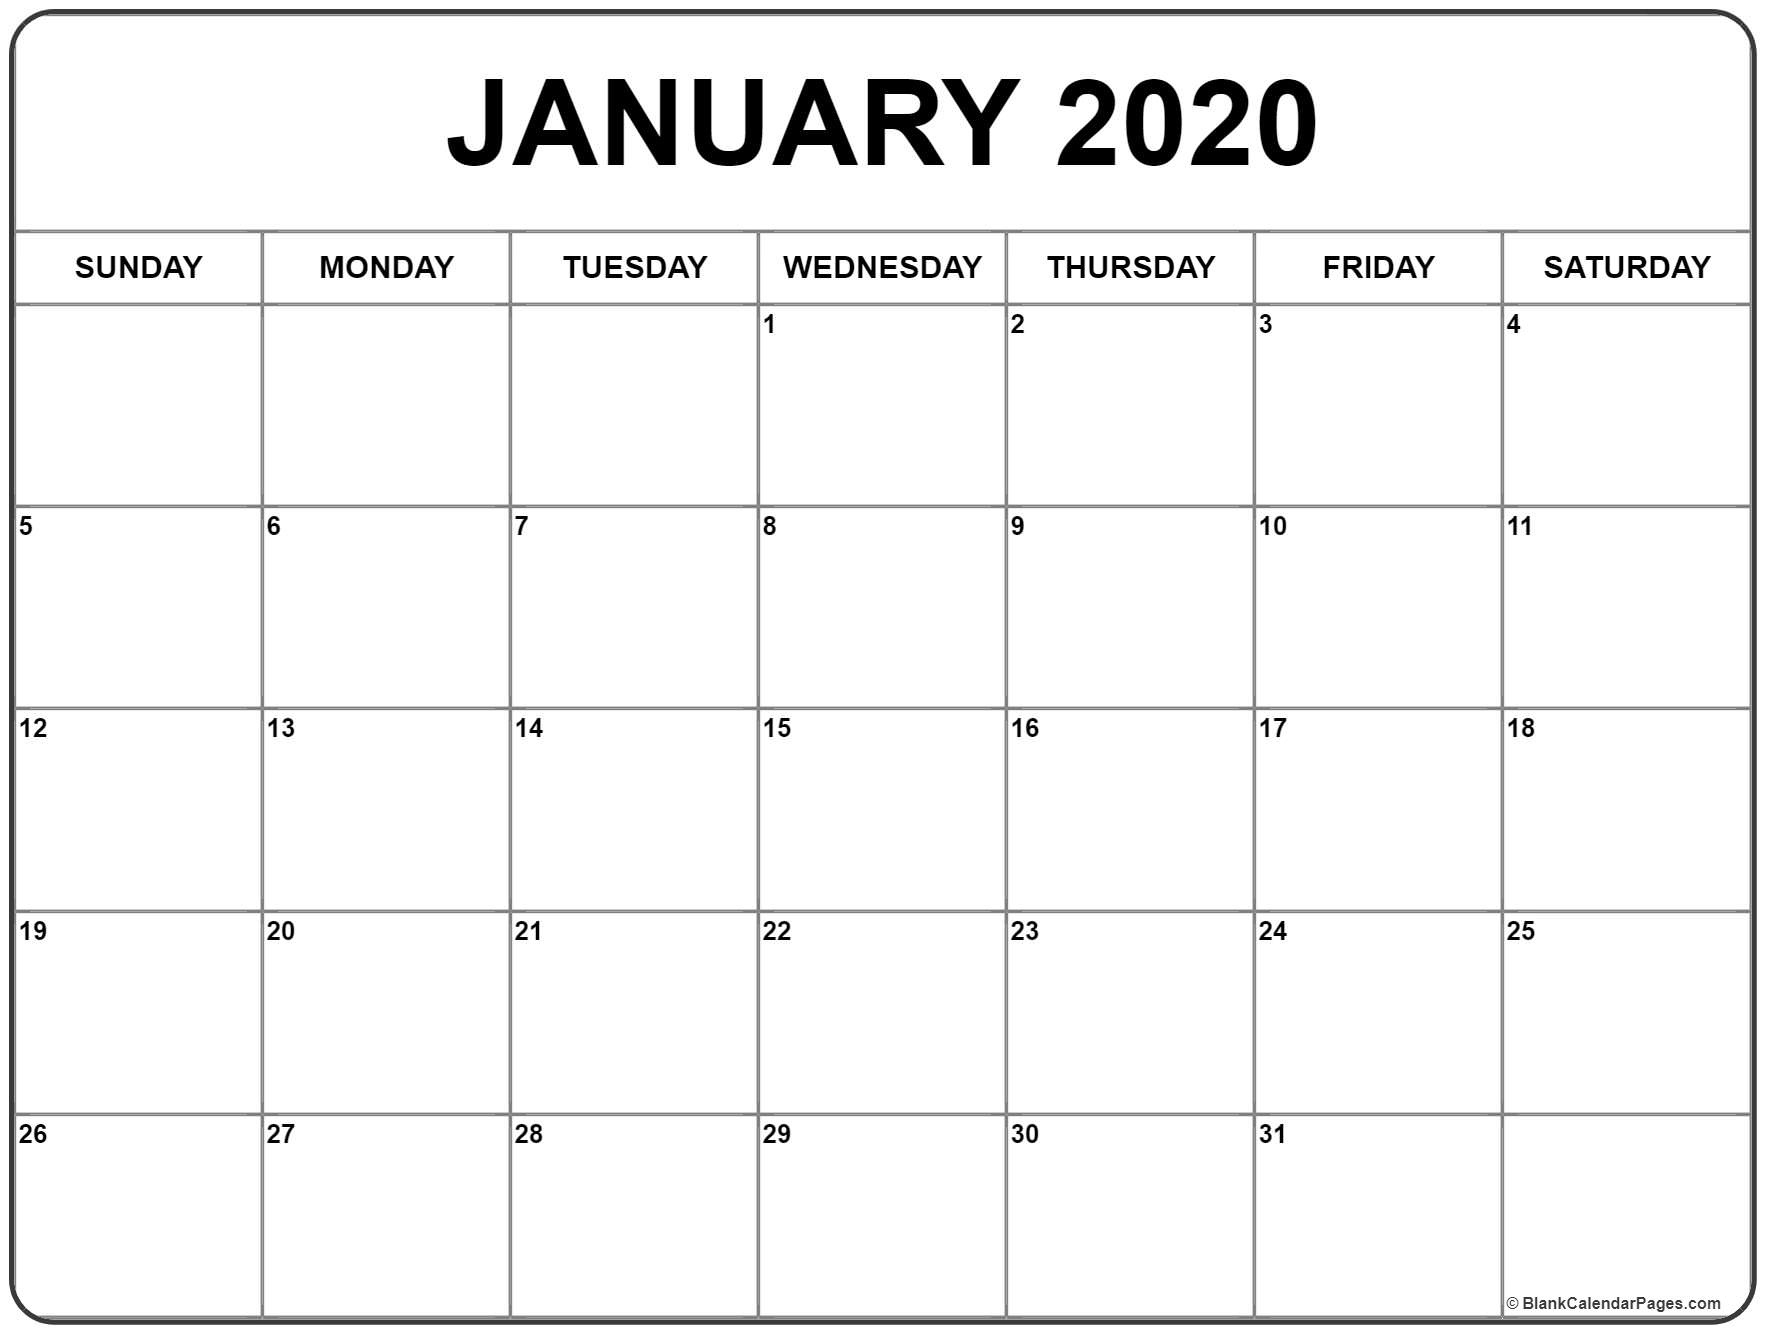 January 2020 Calendar Blank Appointments » Creative Calendar Ideas